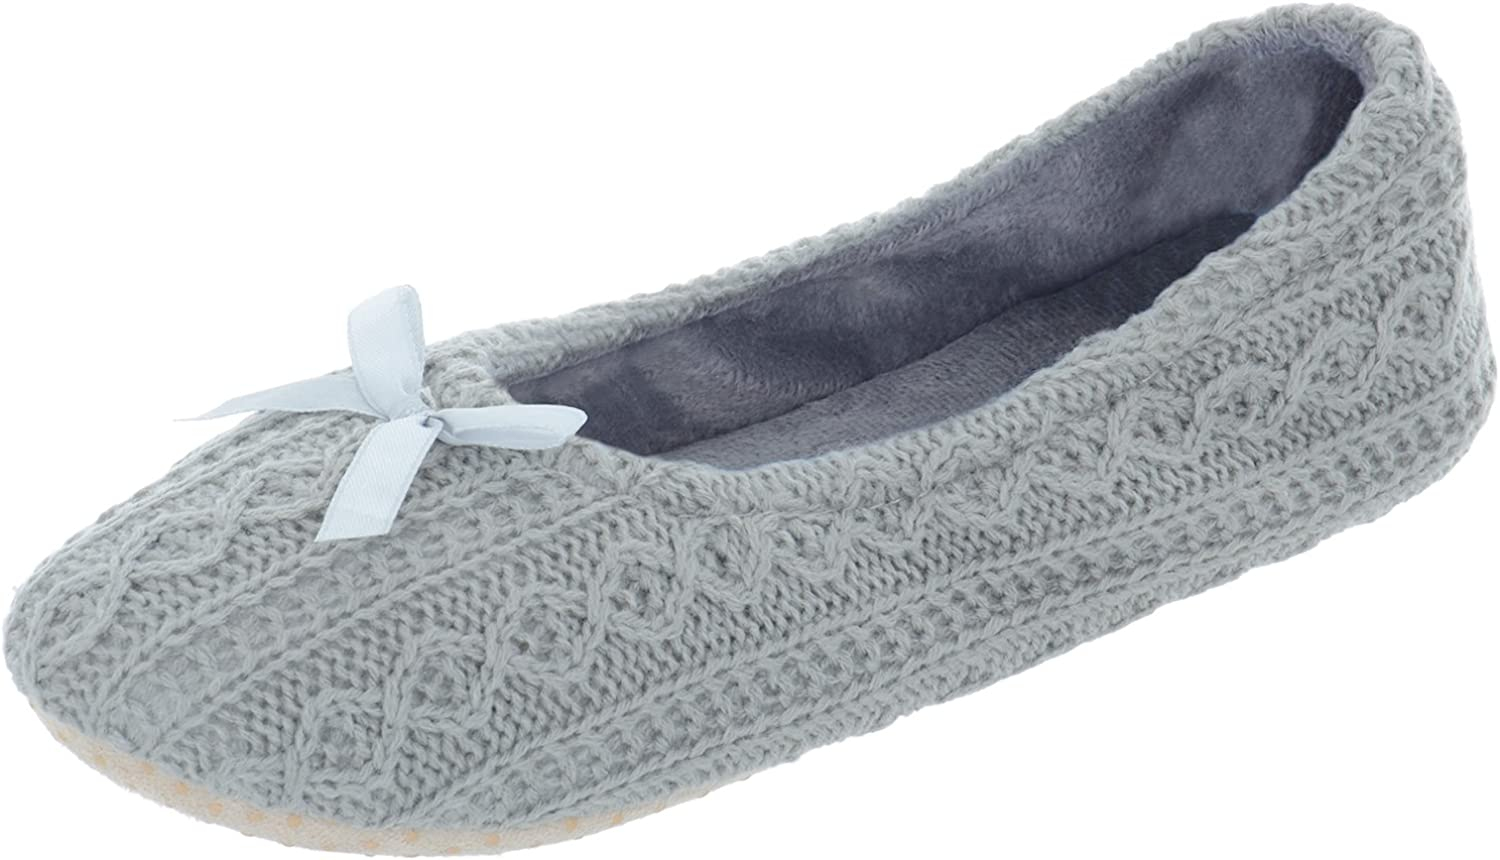 Ladies Fleece Lined Ballet Slippers With Bow